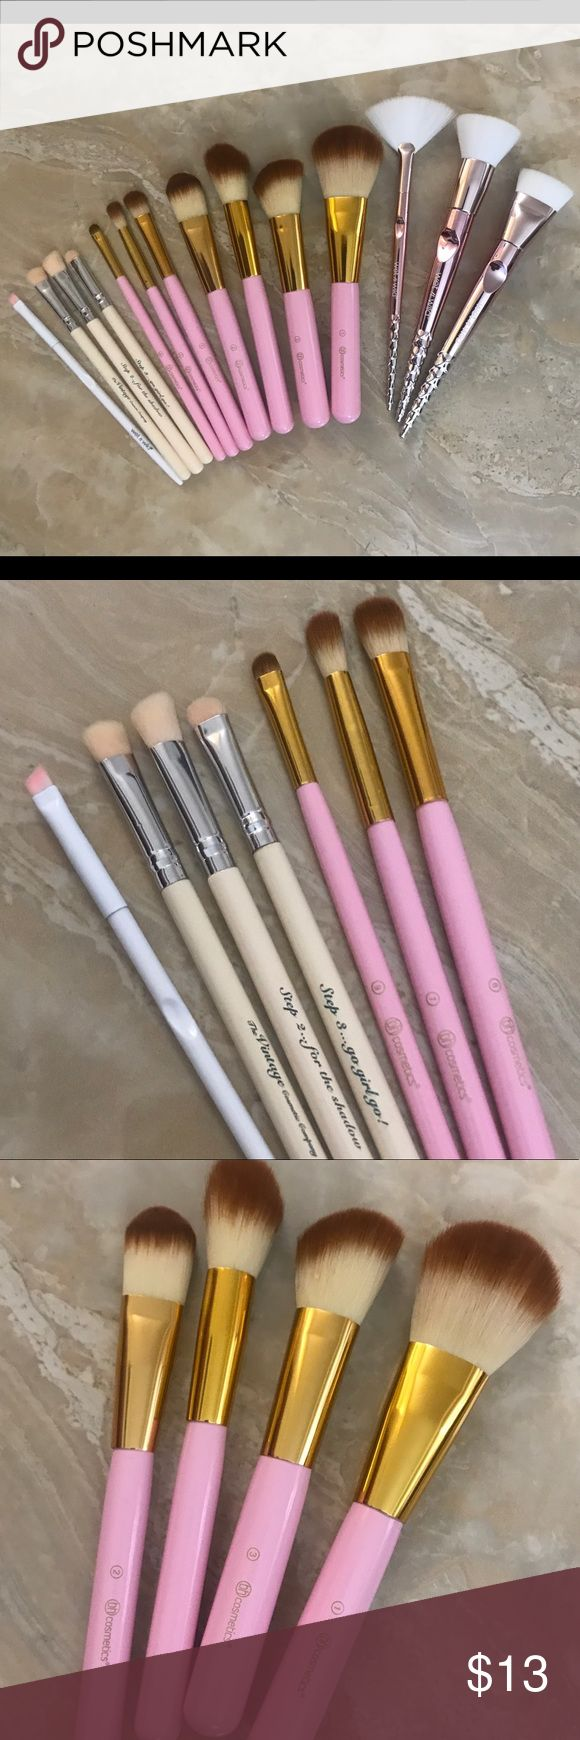 14pc Makeup Brush Set BRAND NEW! Full set of makeup